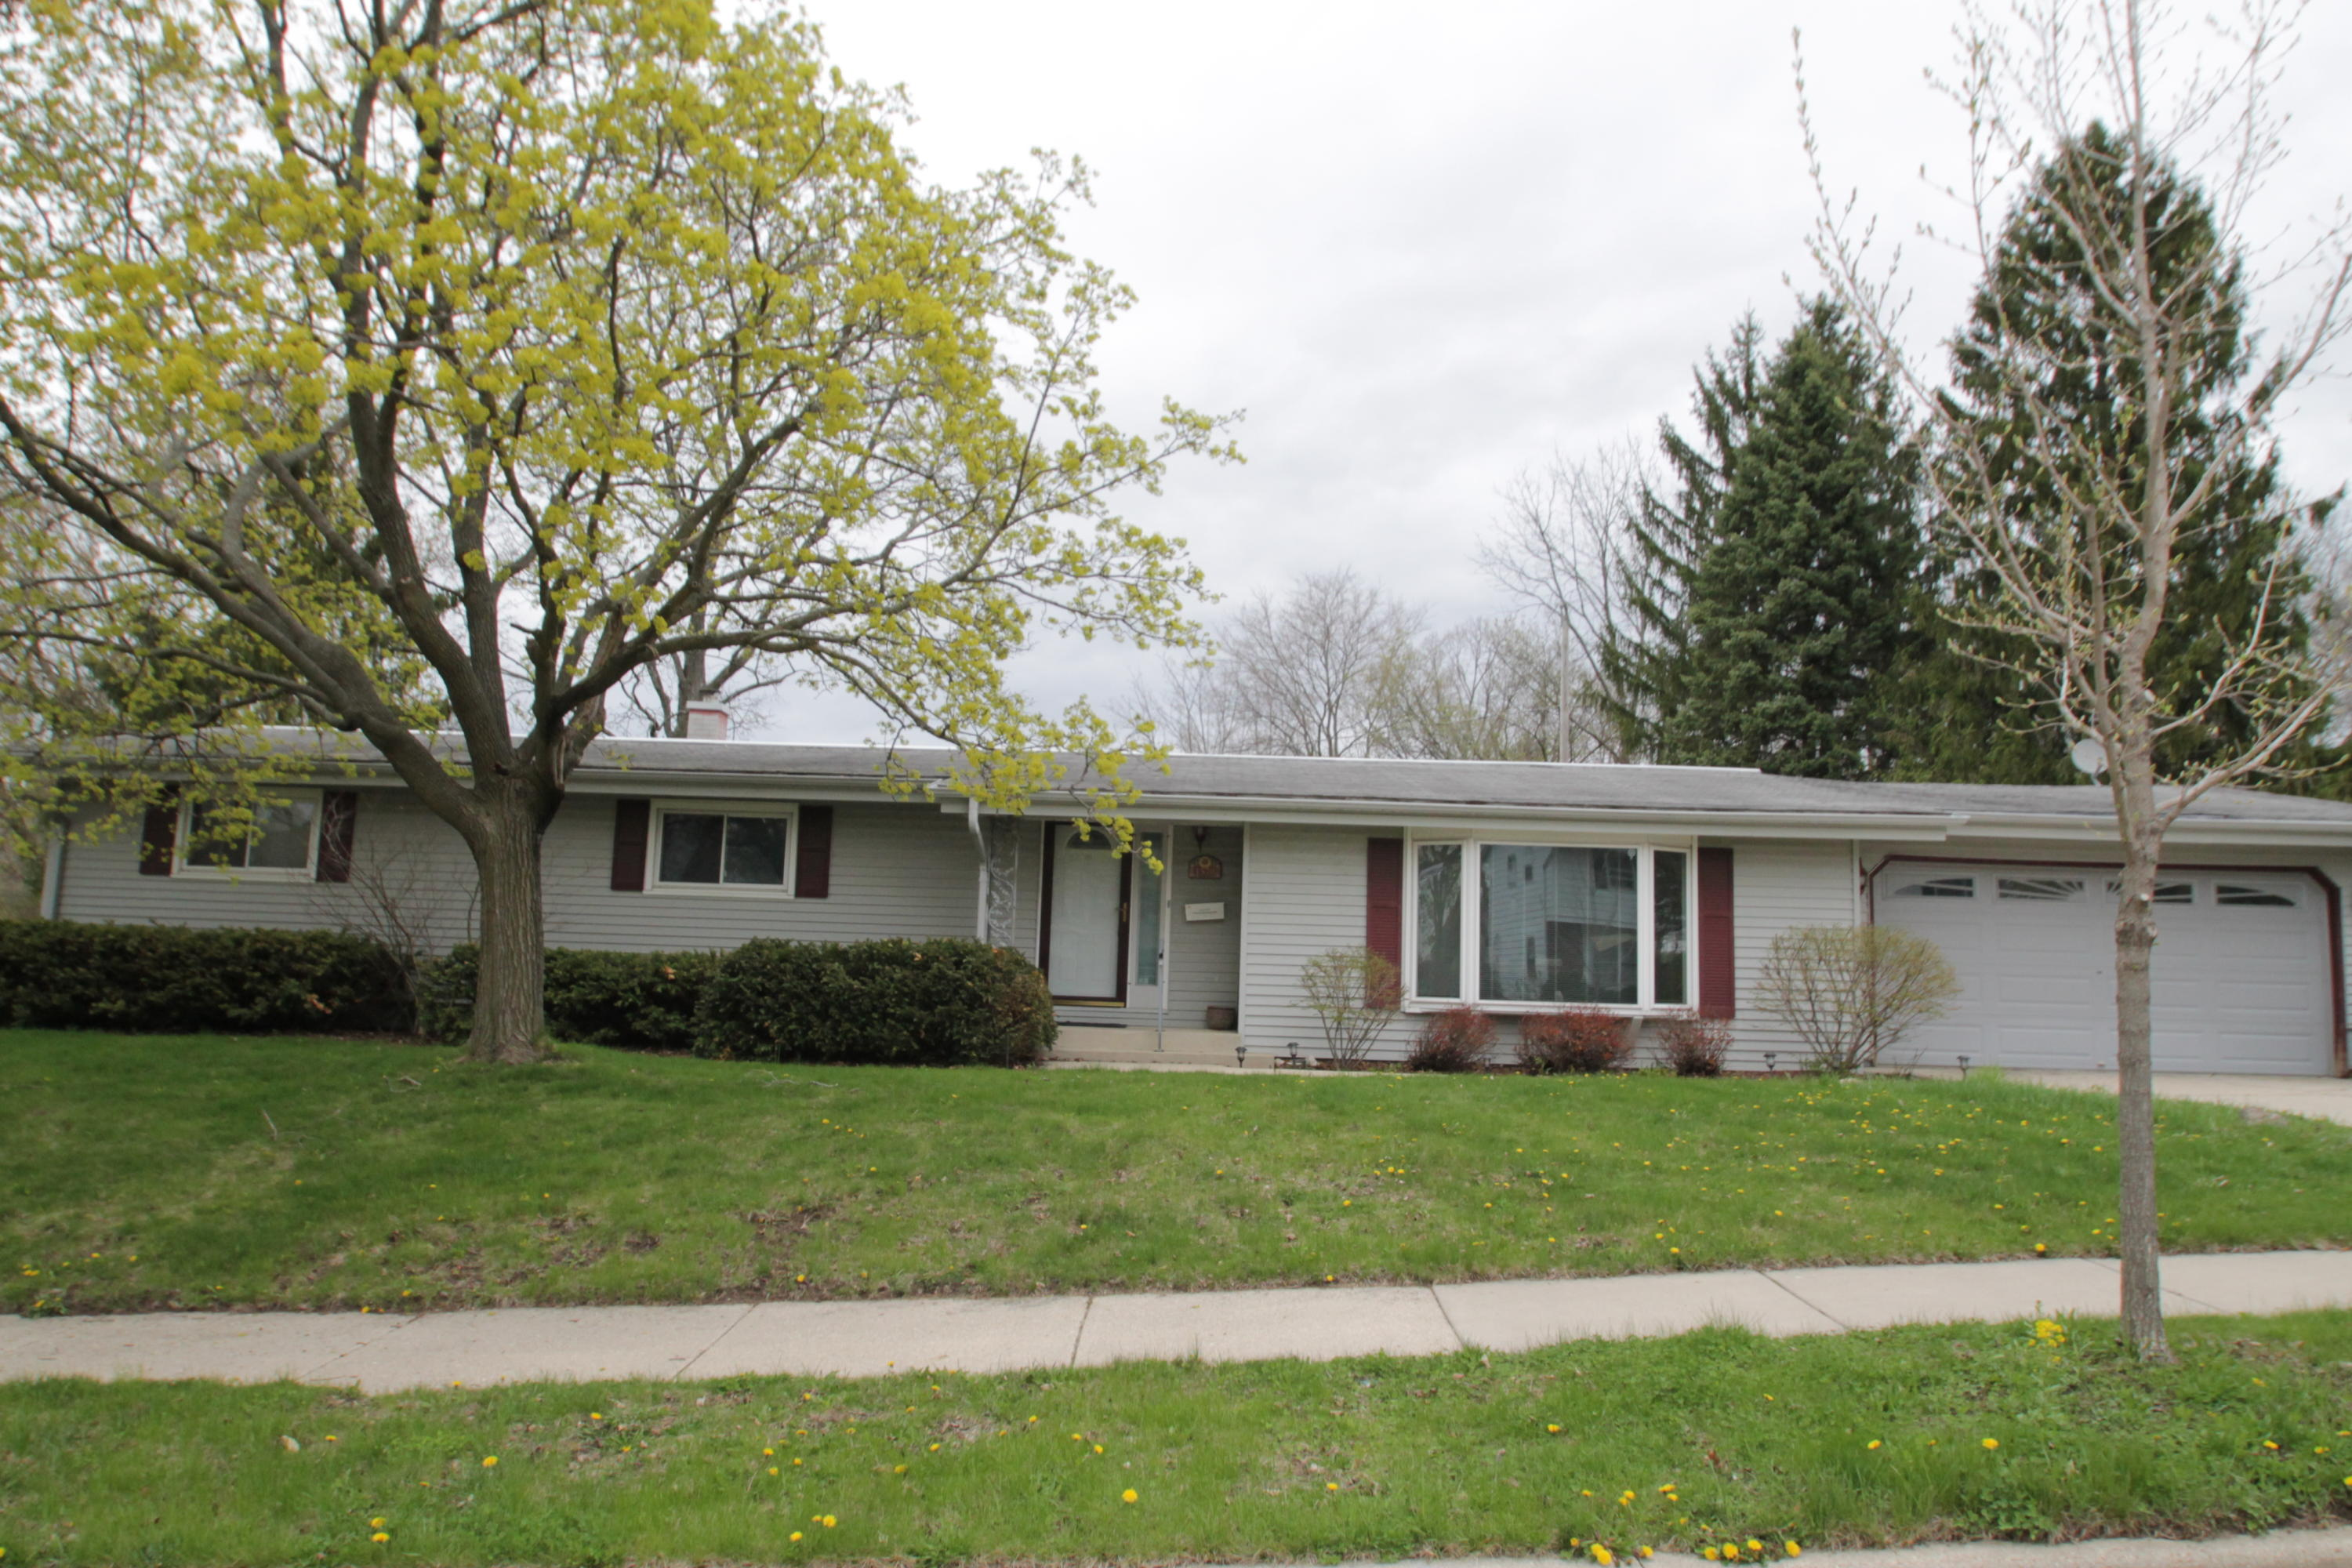 1570 Dover Dr, Waukesha, Wisconsin 53186, 3 Bedrooms Bedrooms, 7 Rooms Rooms,1 BathroomBathrooms,Single-Family,For Sale,Dover Dr,1635198